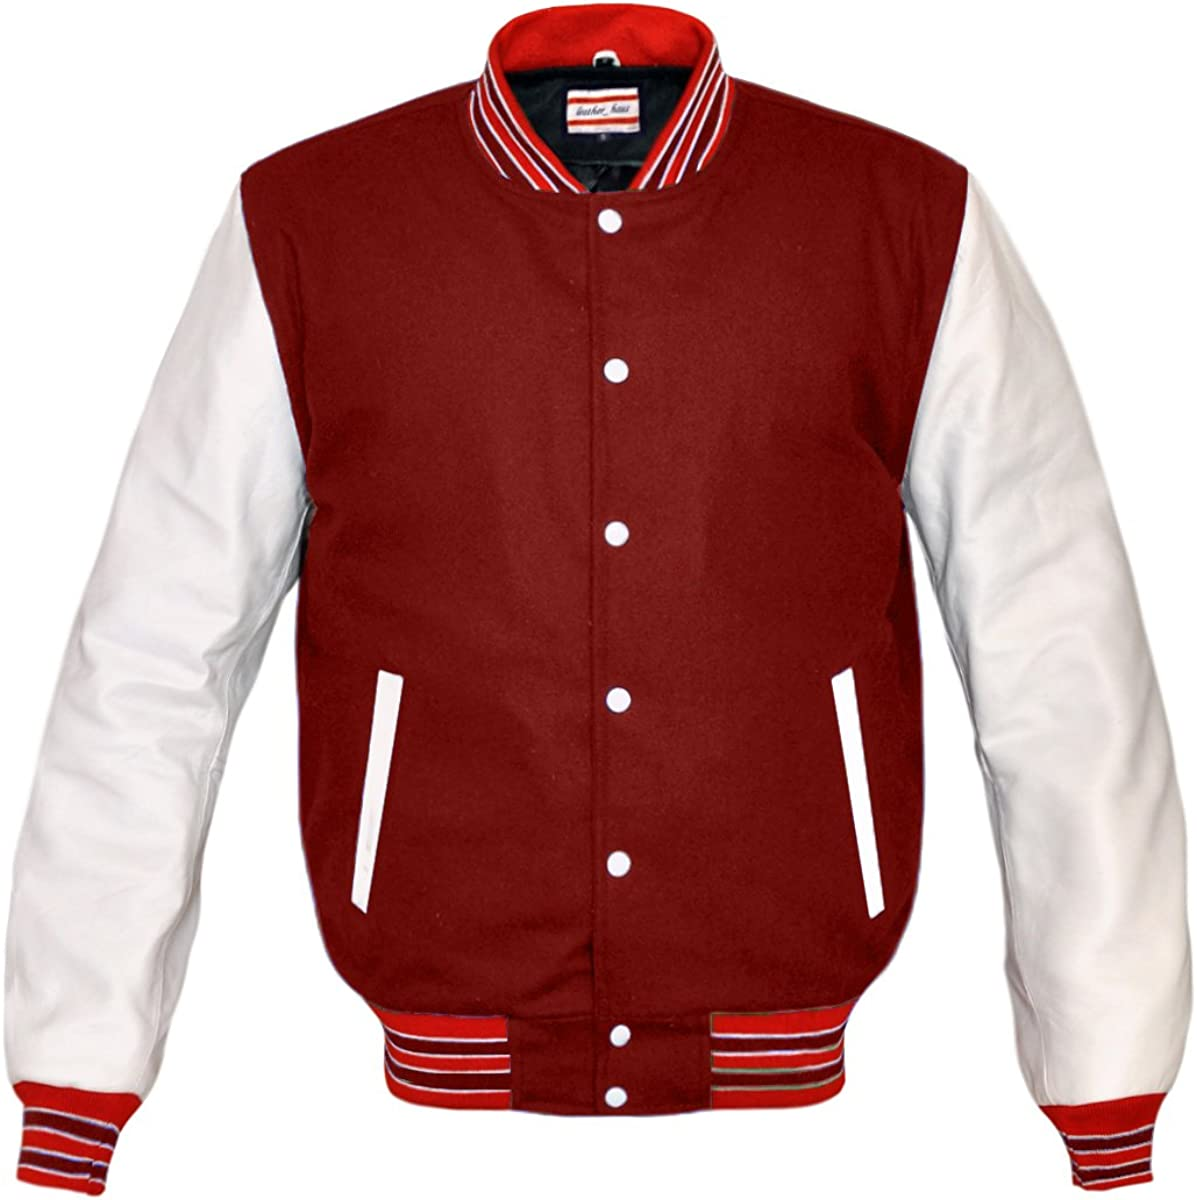 Superb Genuine White Leather Sleeve Letterman College Varsity Men Wool Jackets